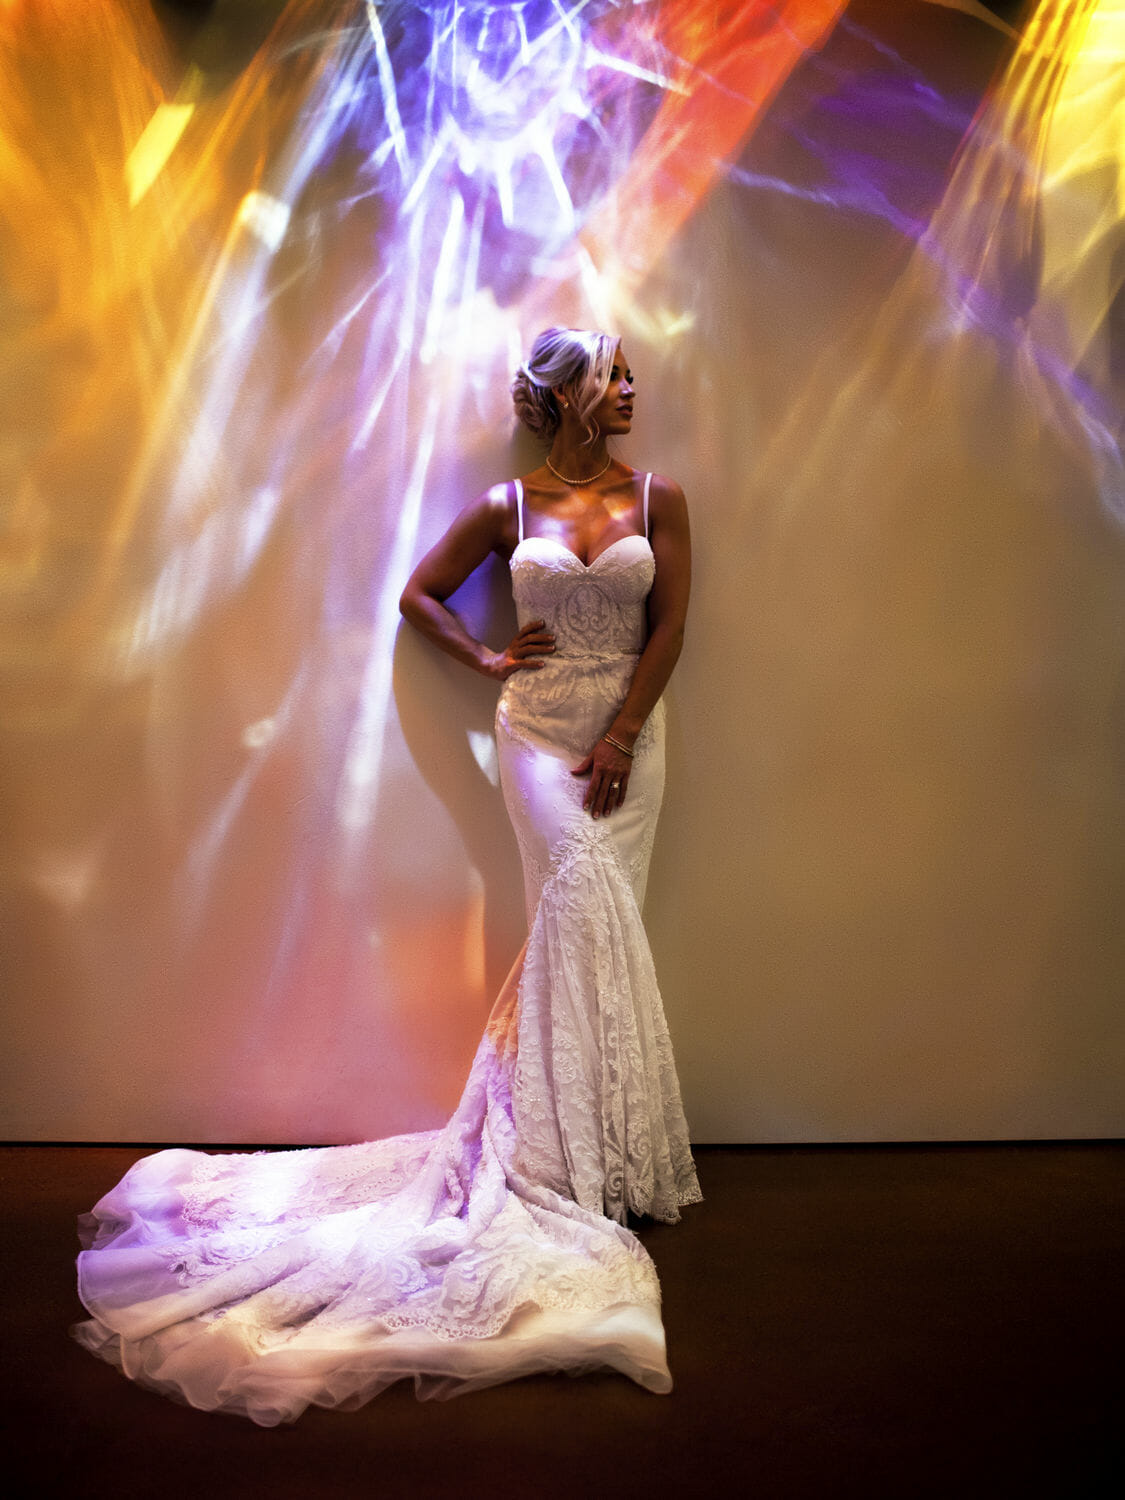 wedding-photographer-chihuly-garden-glass-seattle-lindsay-daniel-430_lndd6040